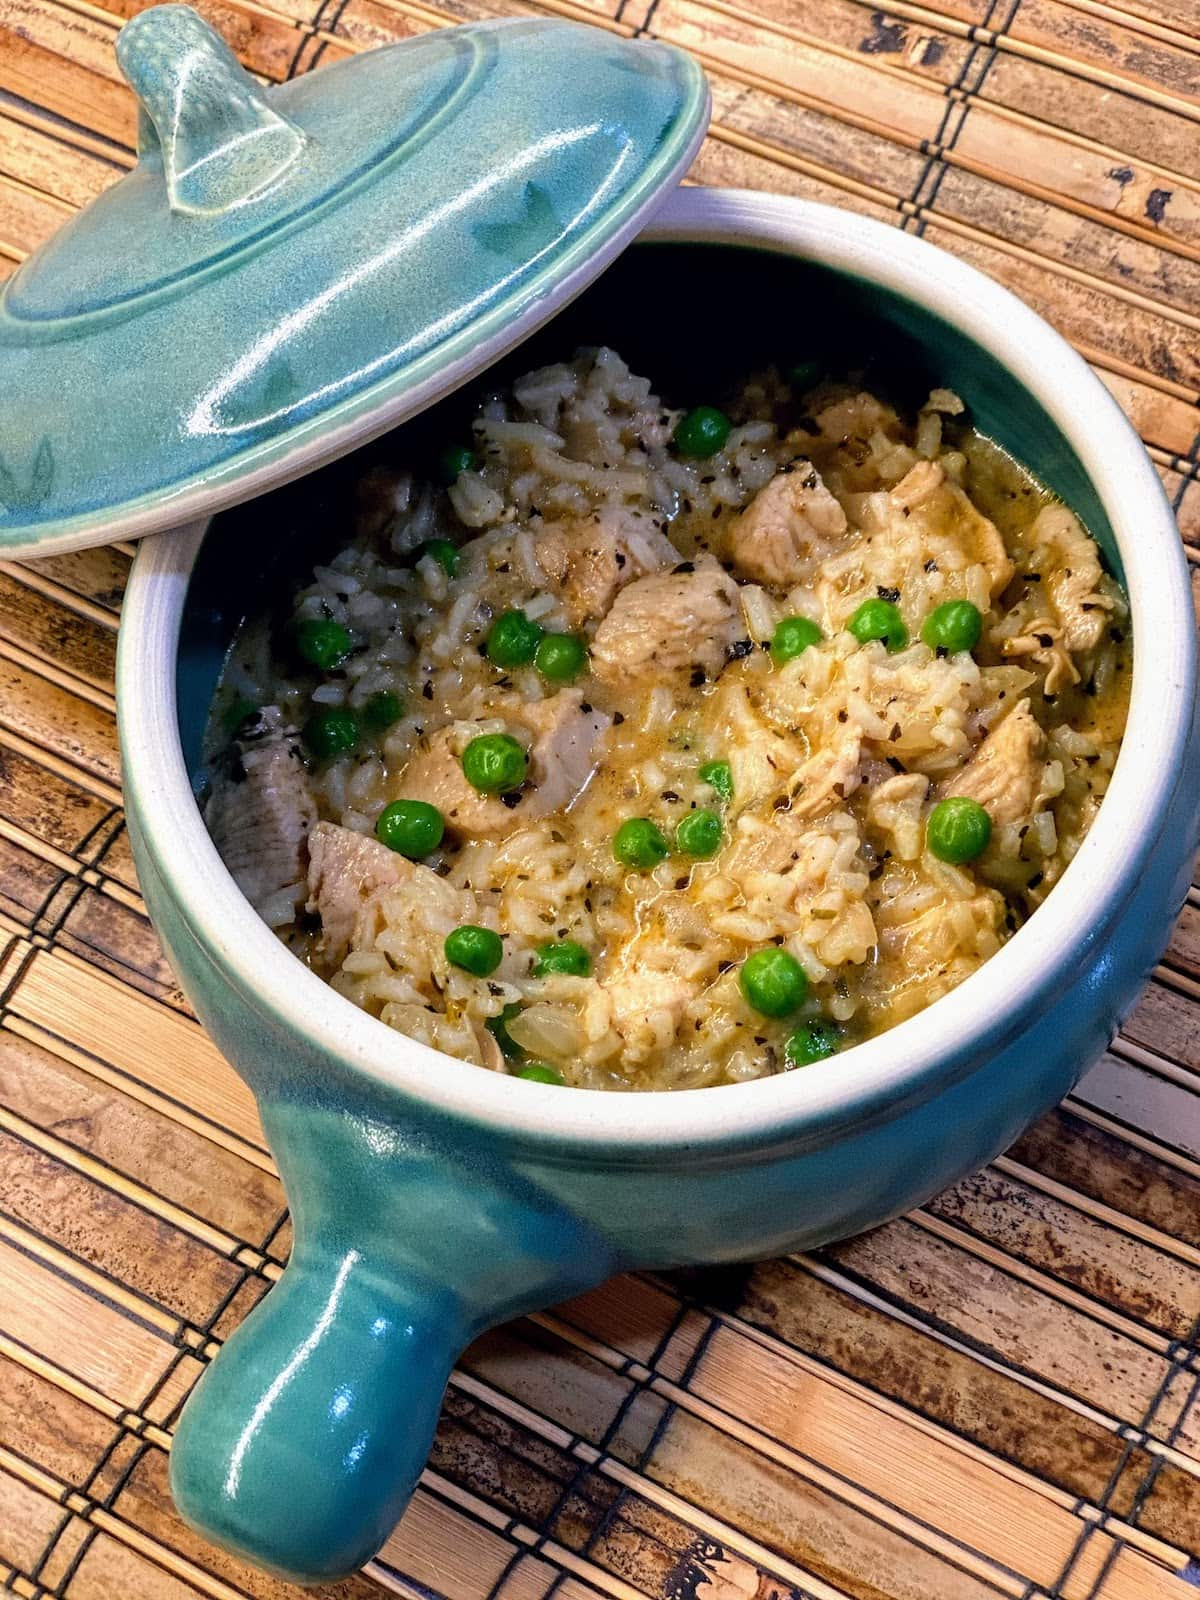 small blue crockpot filled with chicken, rice and peas